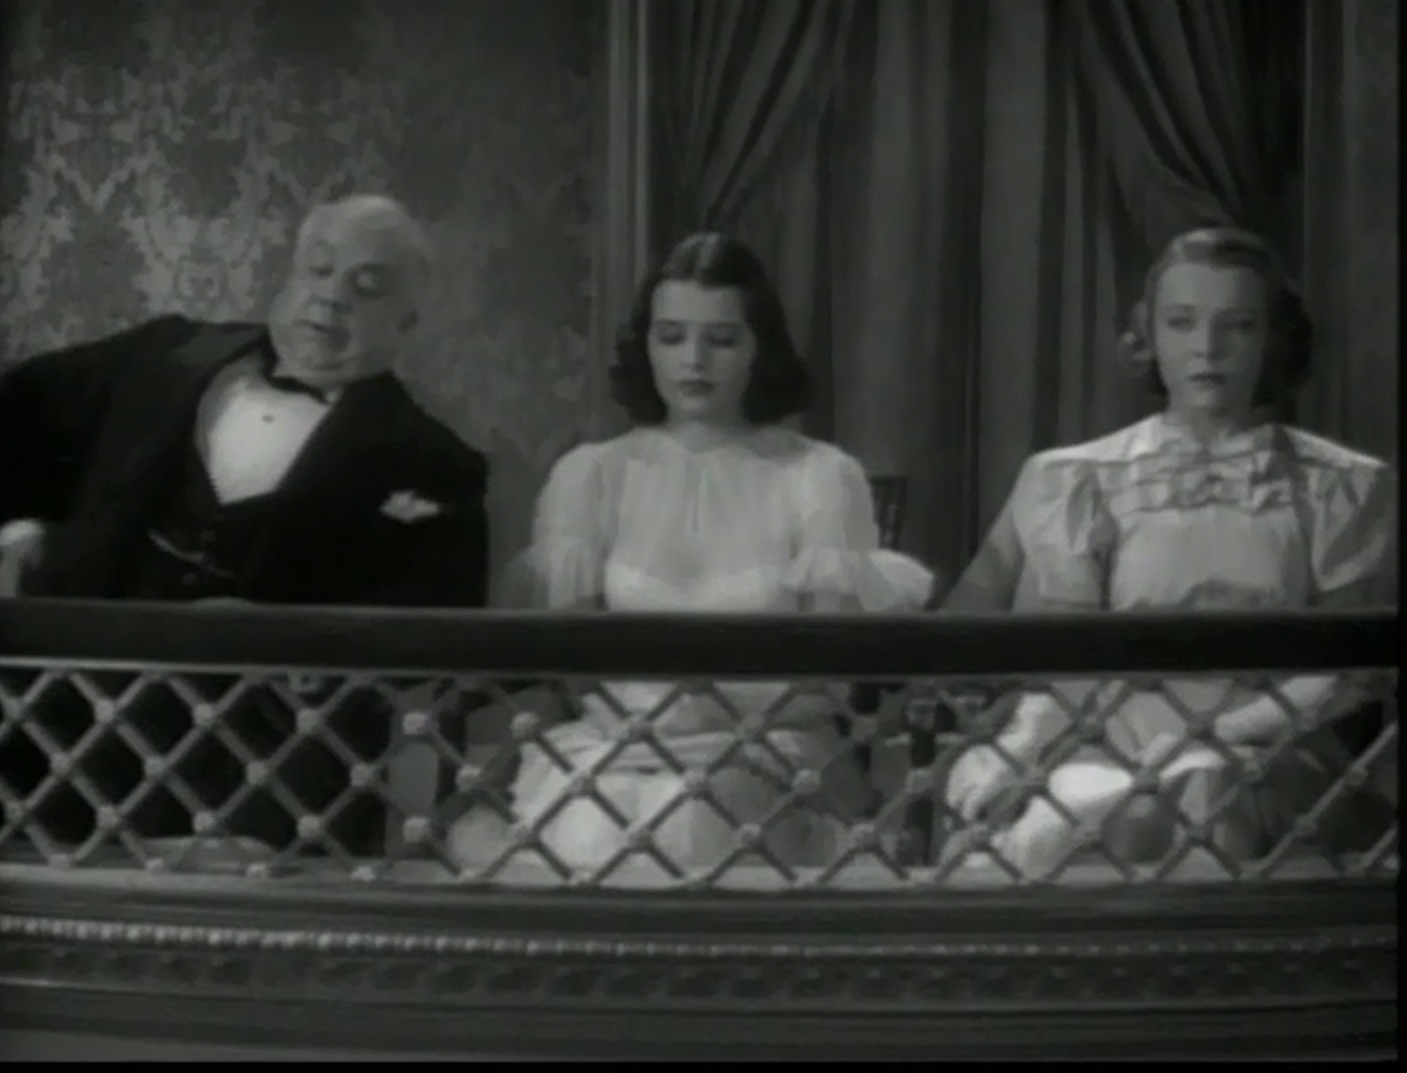 Jane Bryan, Mary Maguire, and Ferdinand Munier in Confession (1937)